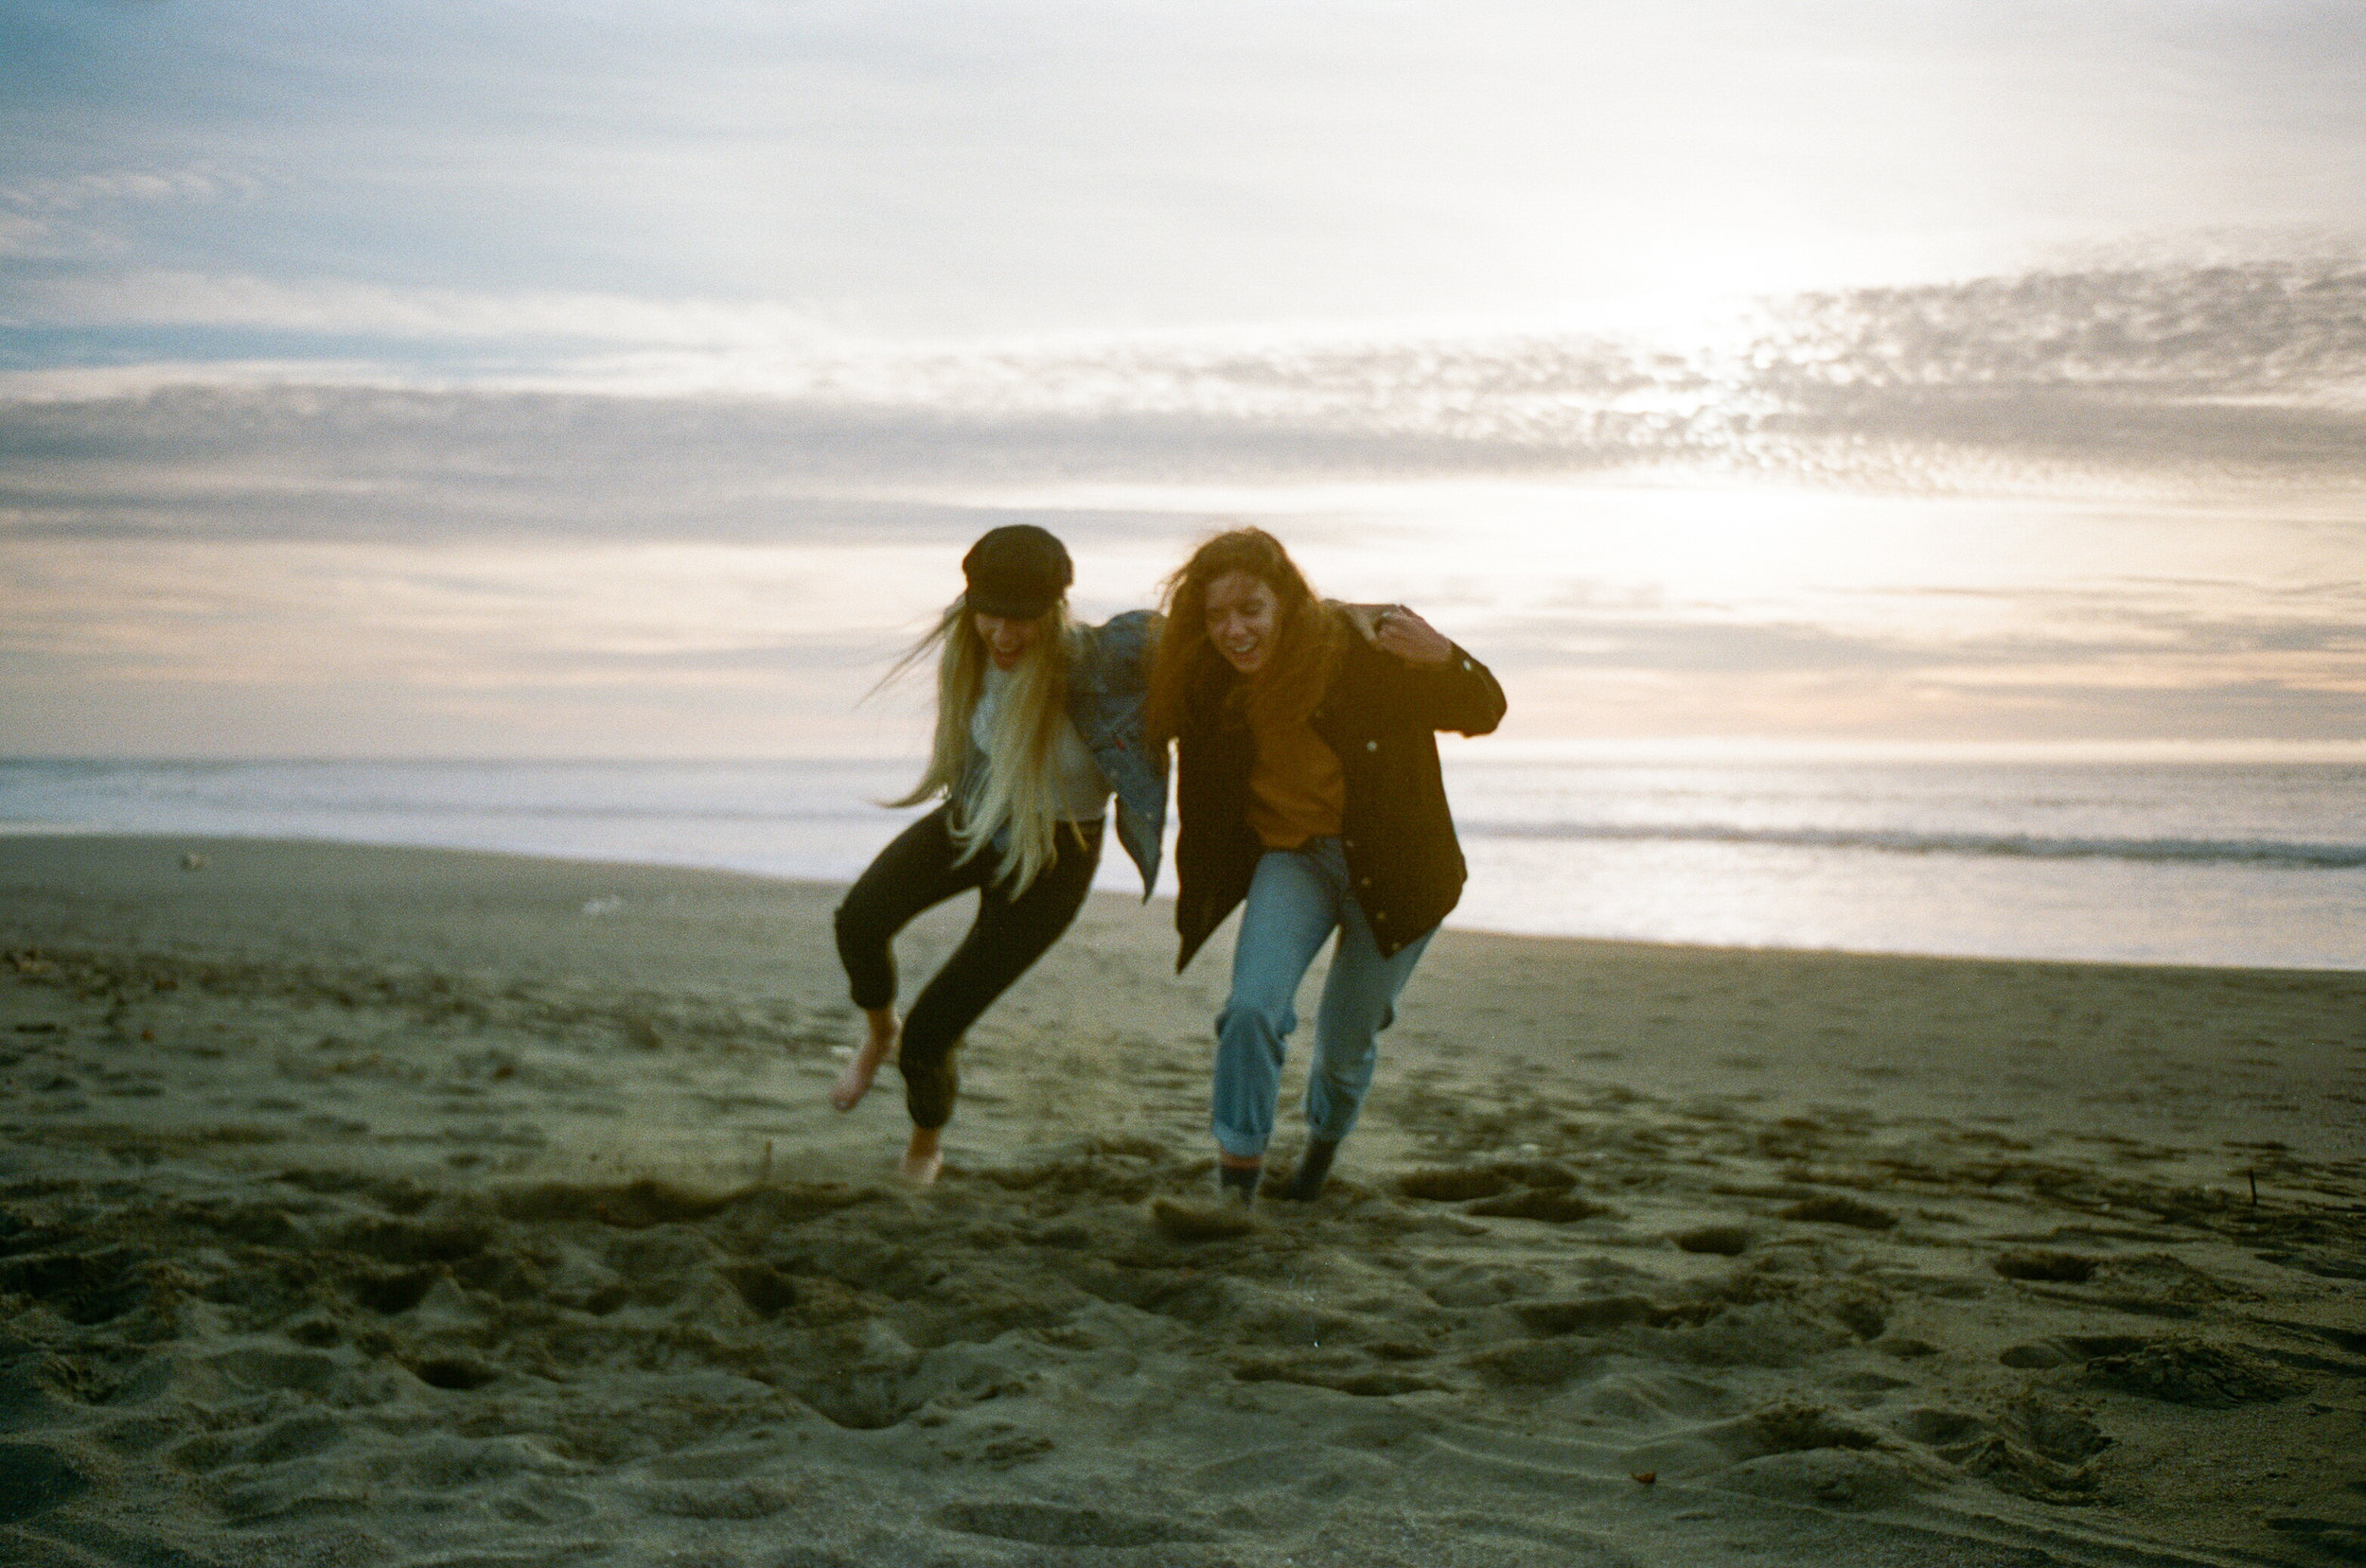 hannah&cole-california-film-jan2019-peytoncurry-000098780005.jpg